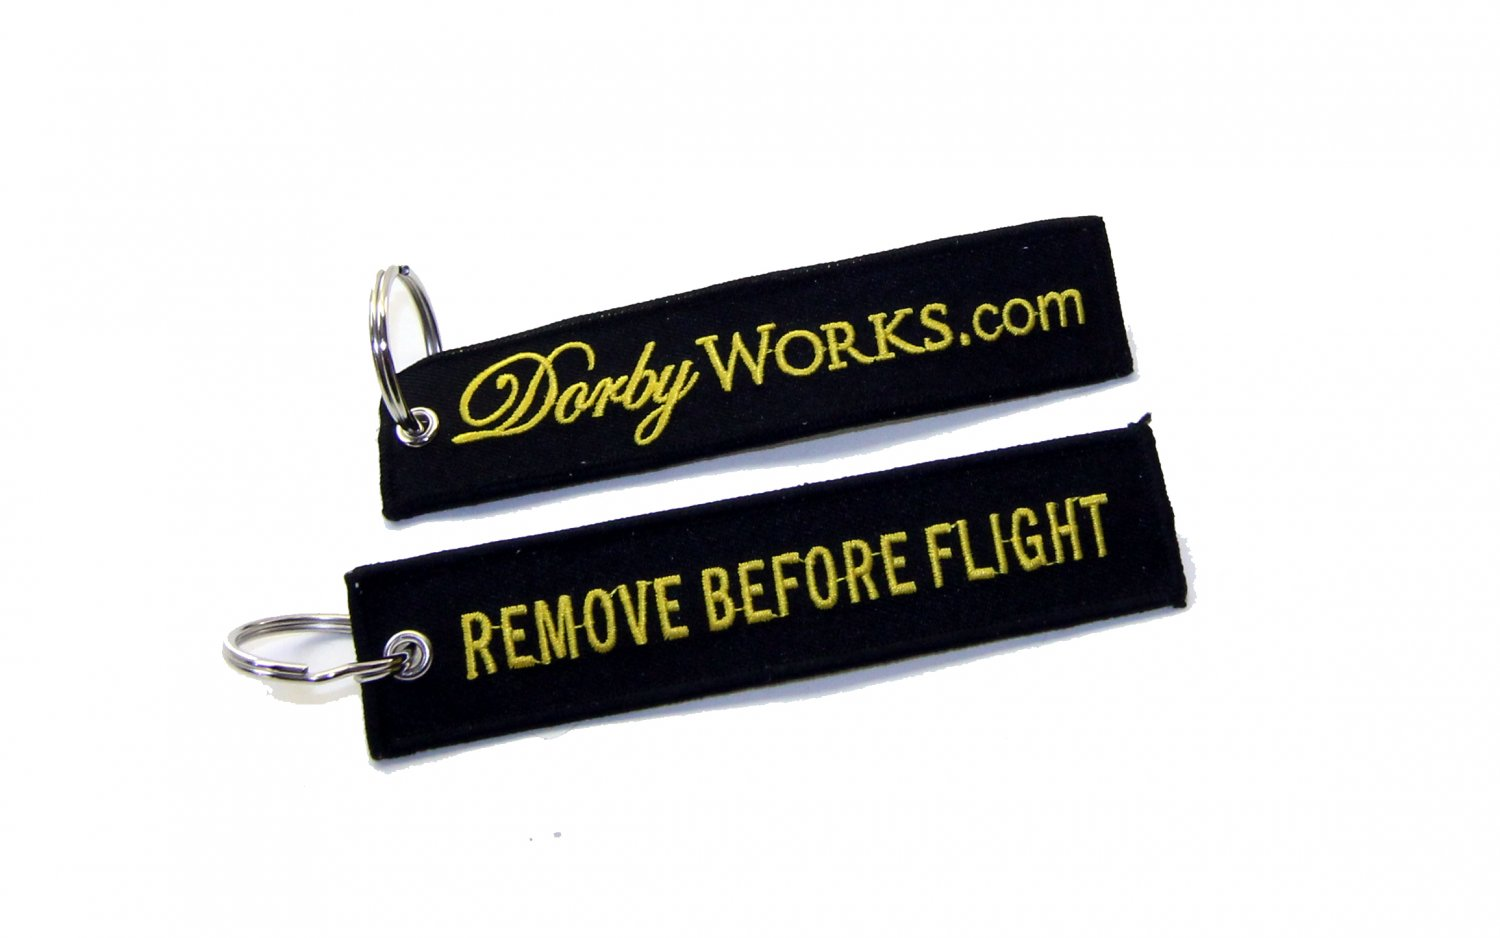 Dorbyworks remove before flight keychain GOLD